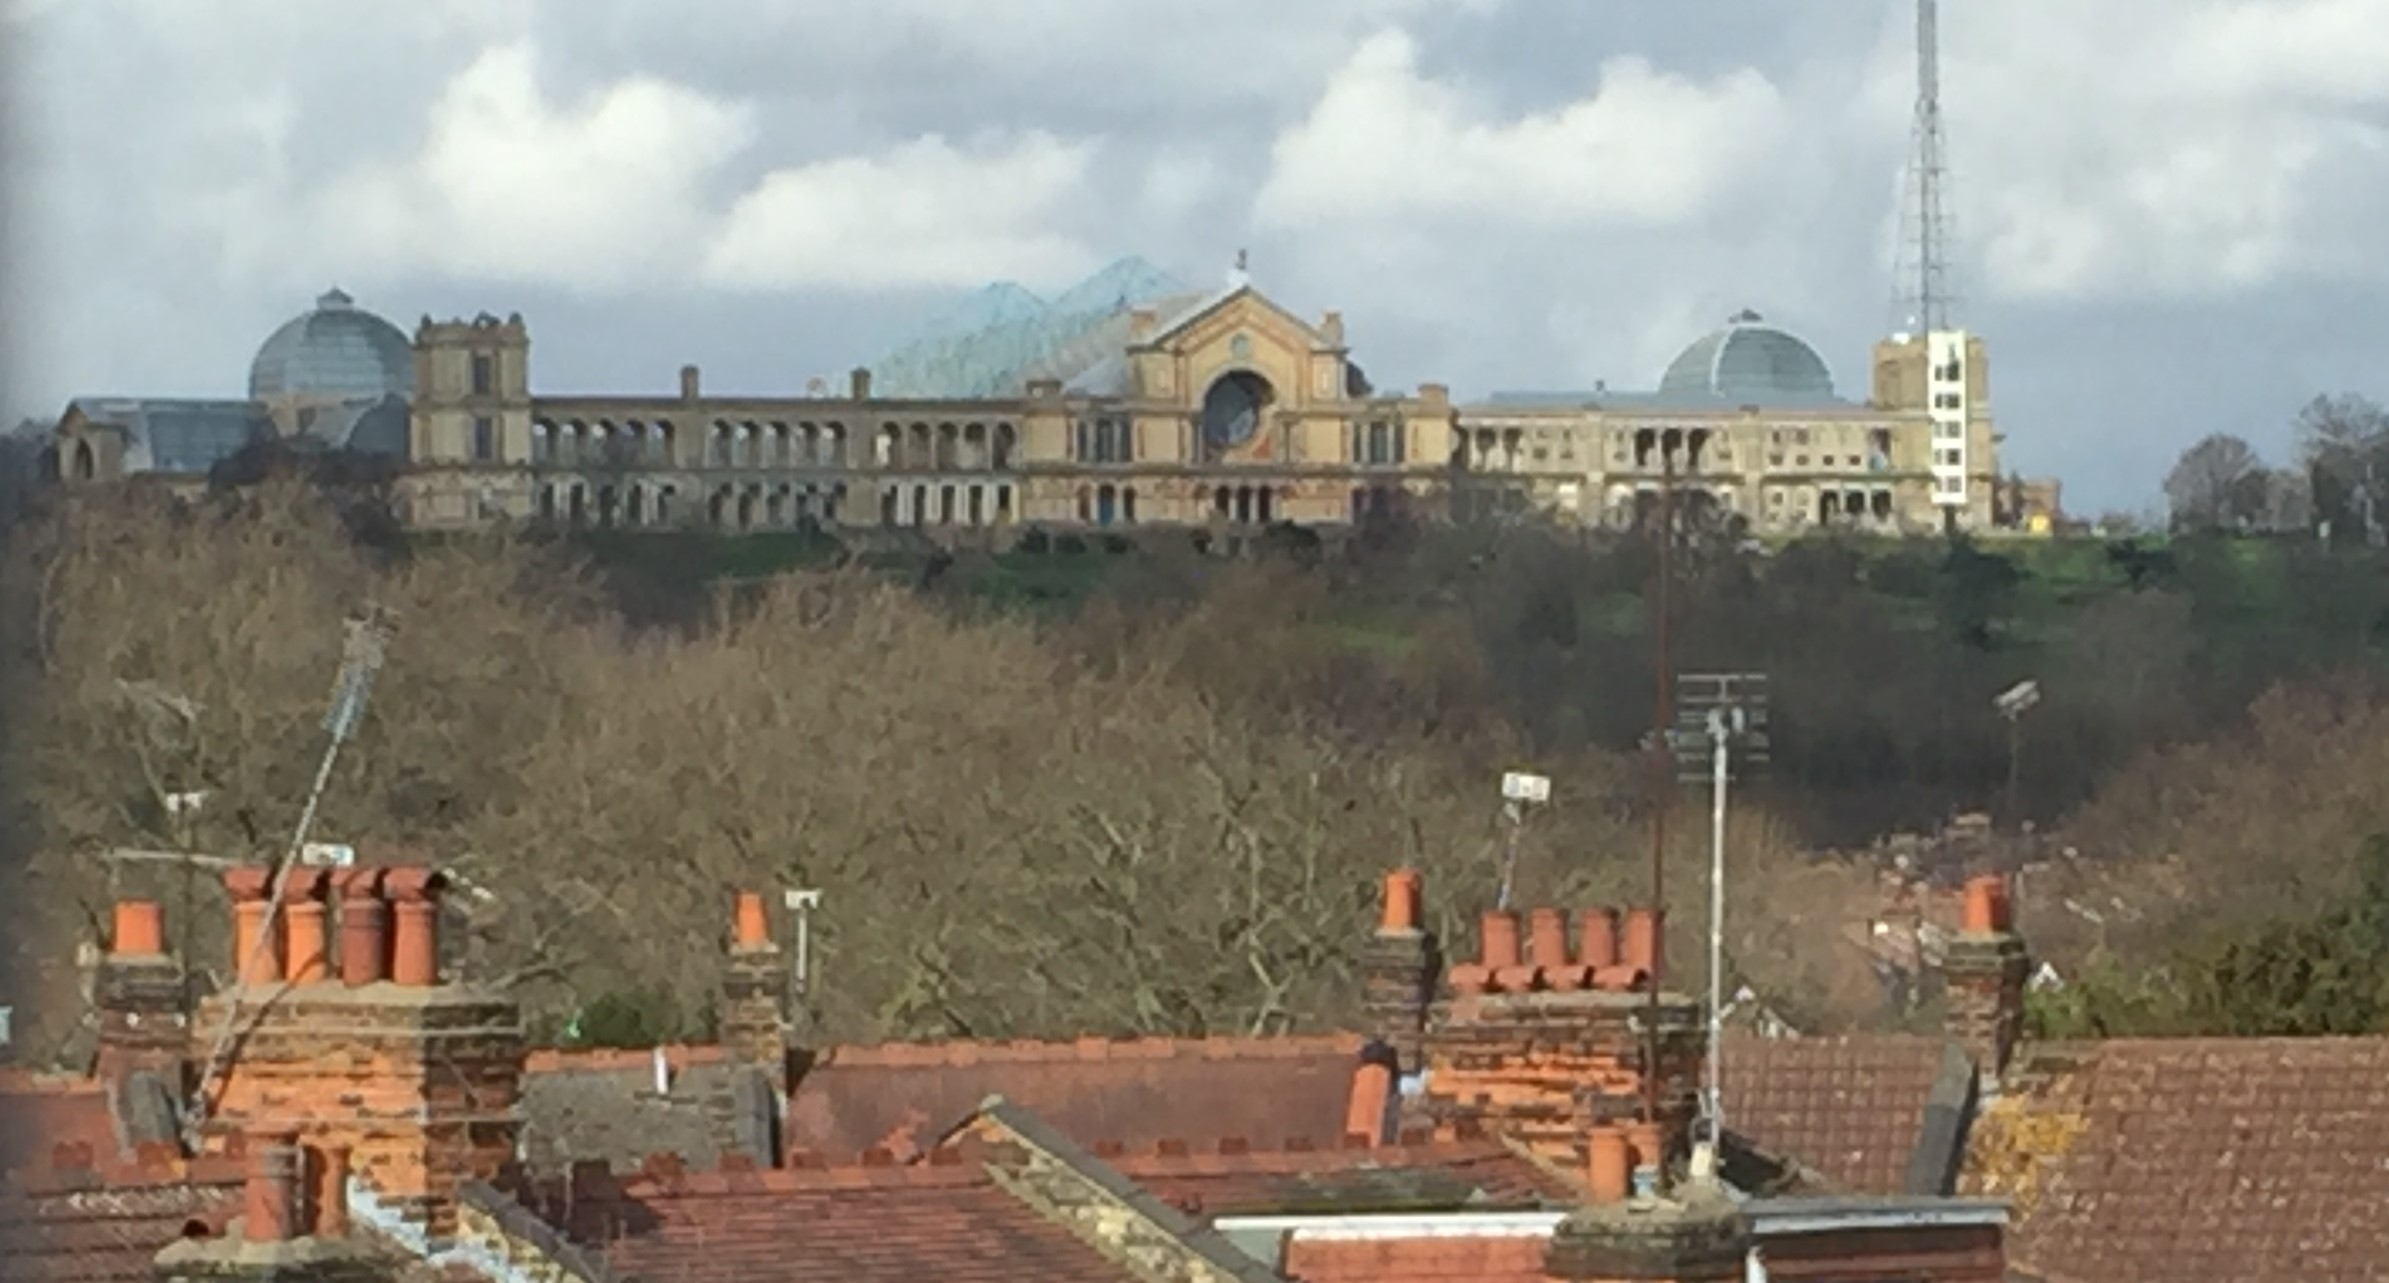 Maureen's view of Ally Pally